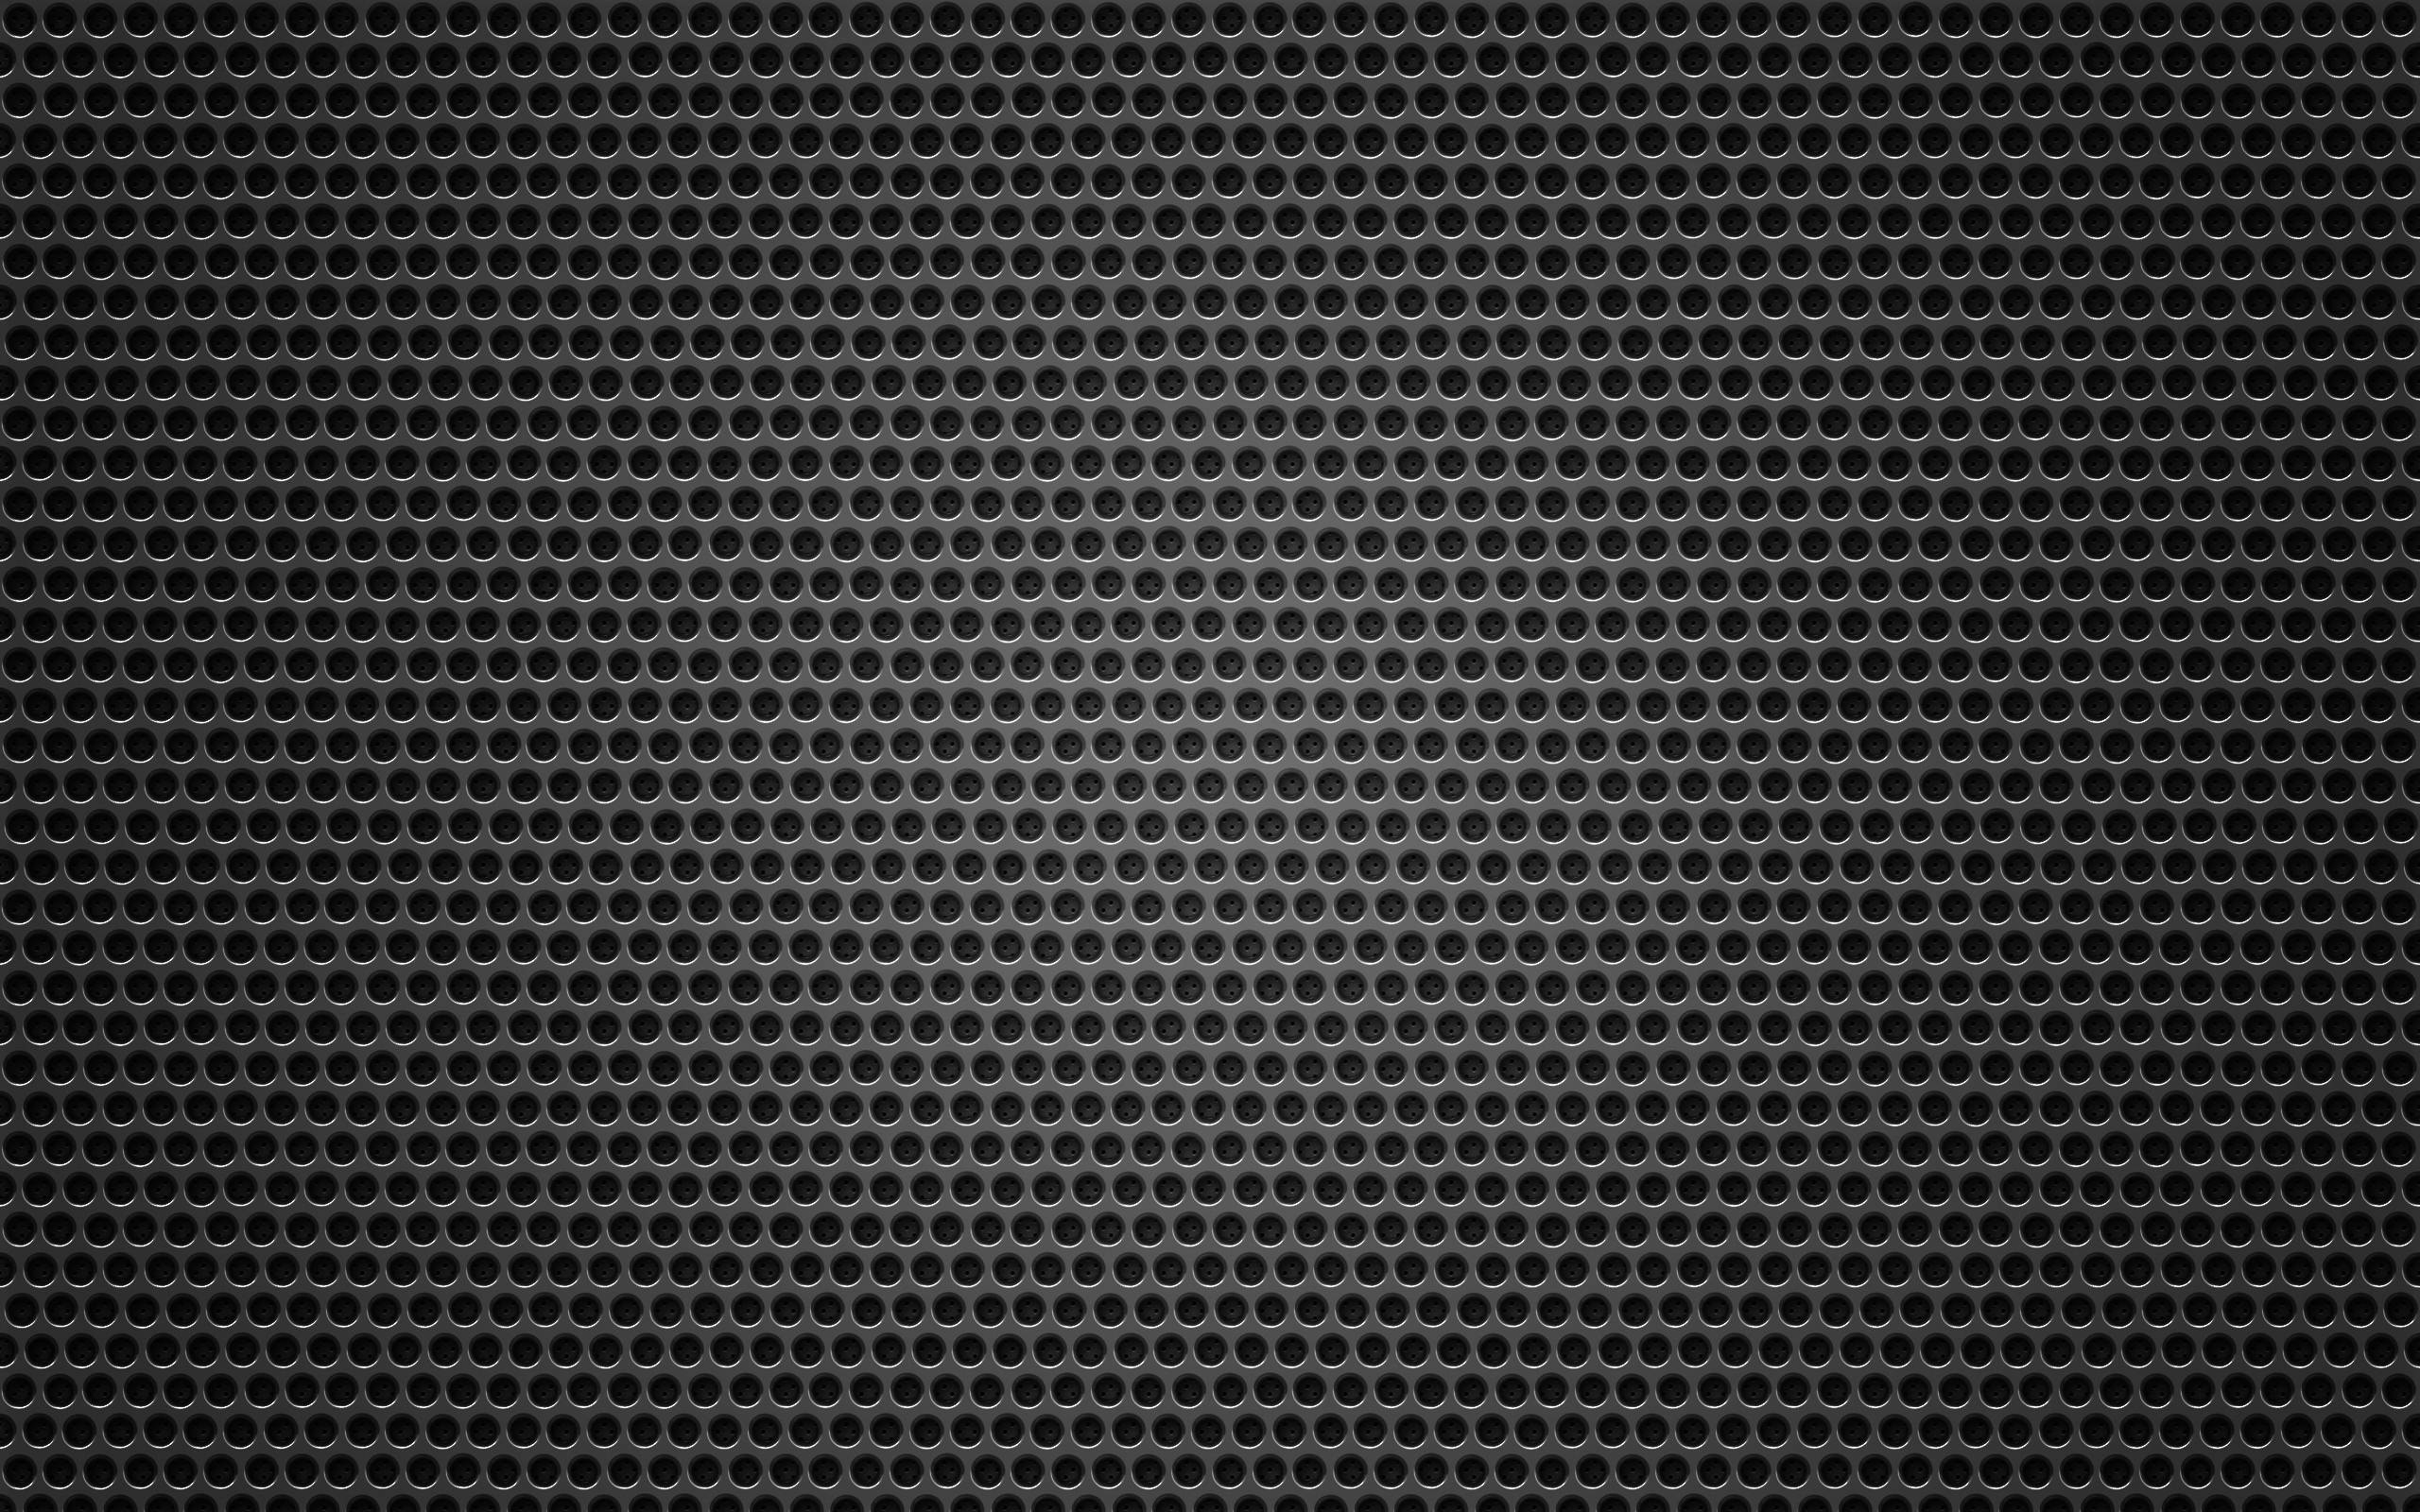 2560x1600 Black Carbon Wallpapers